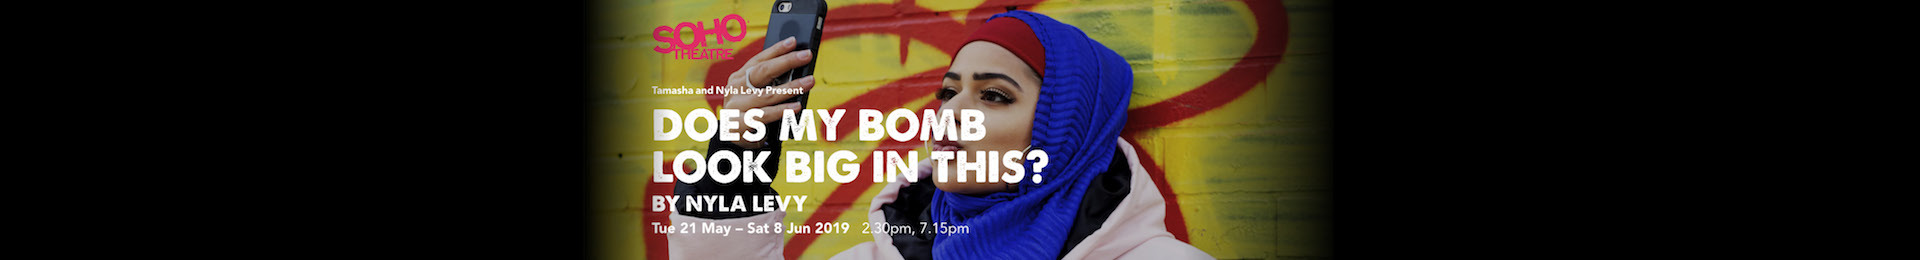 Does My Bomb Look Big in This? banner image